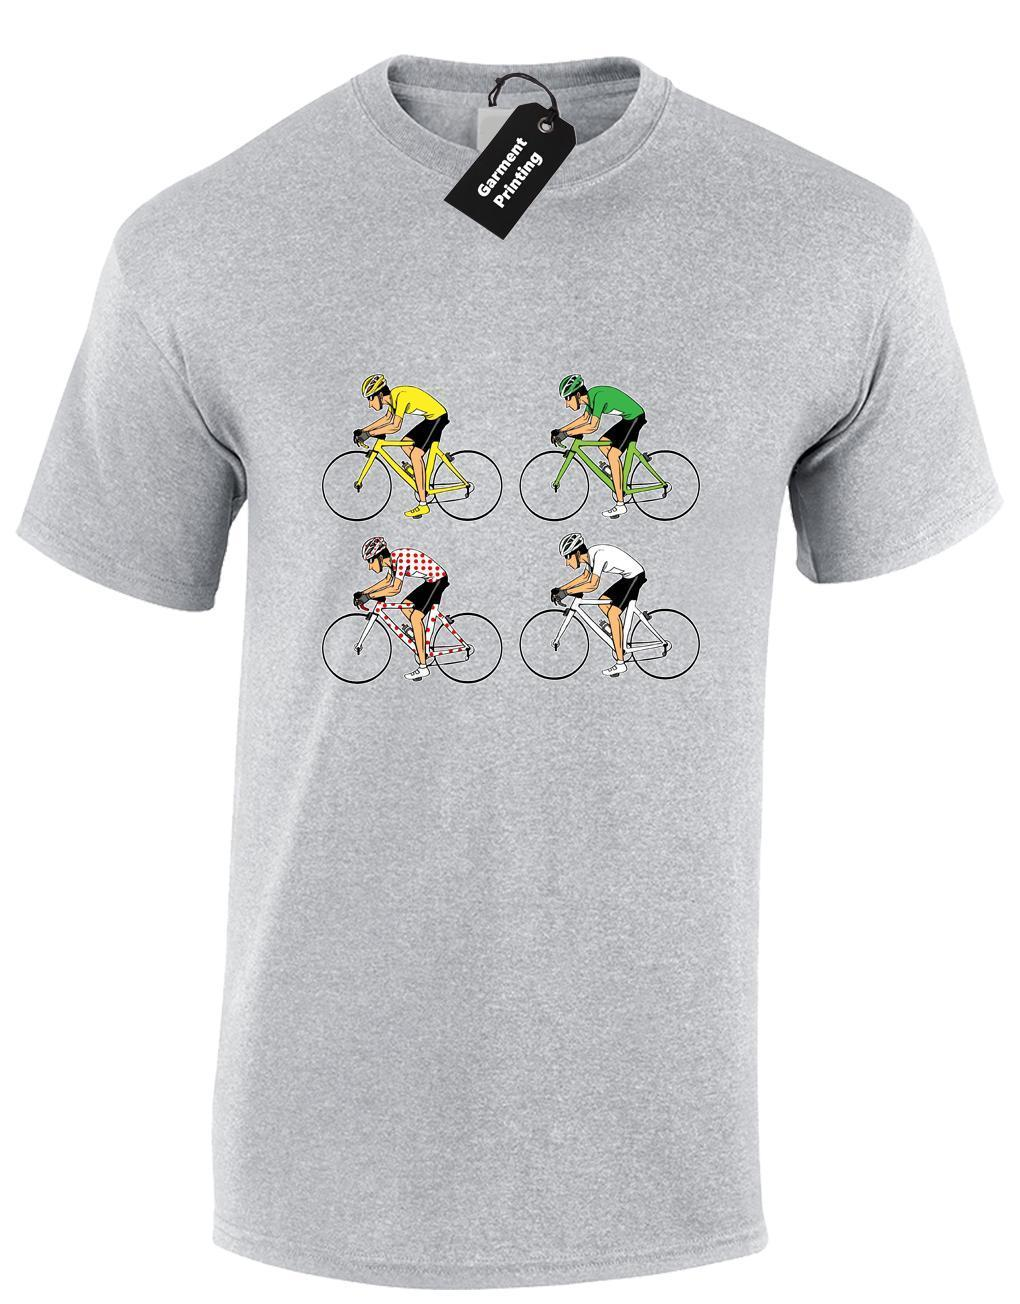 TOUR DE FRANCE JERSEYS MENS T-SHIRT FUNNY CYCLING CYCLIST BIKE GIFT IDEA (COL)